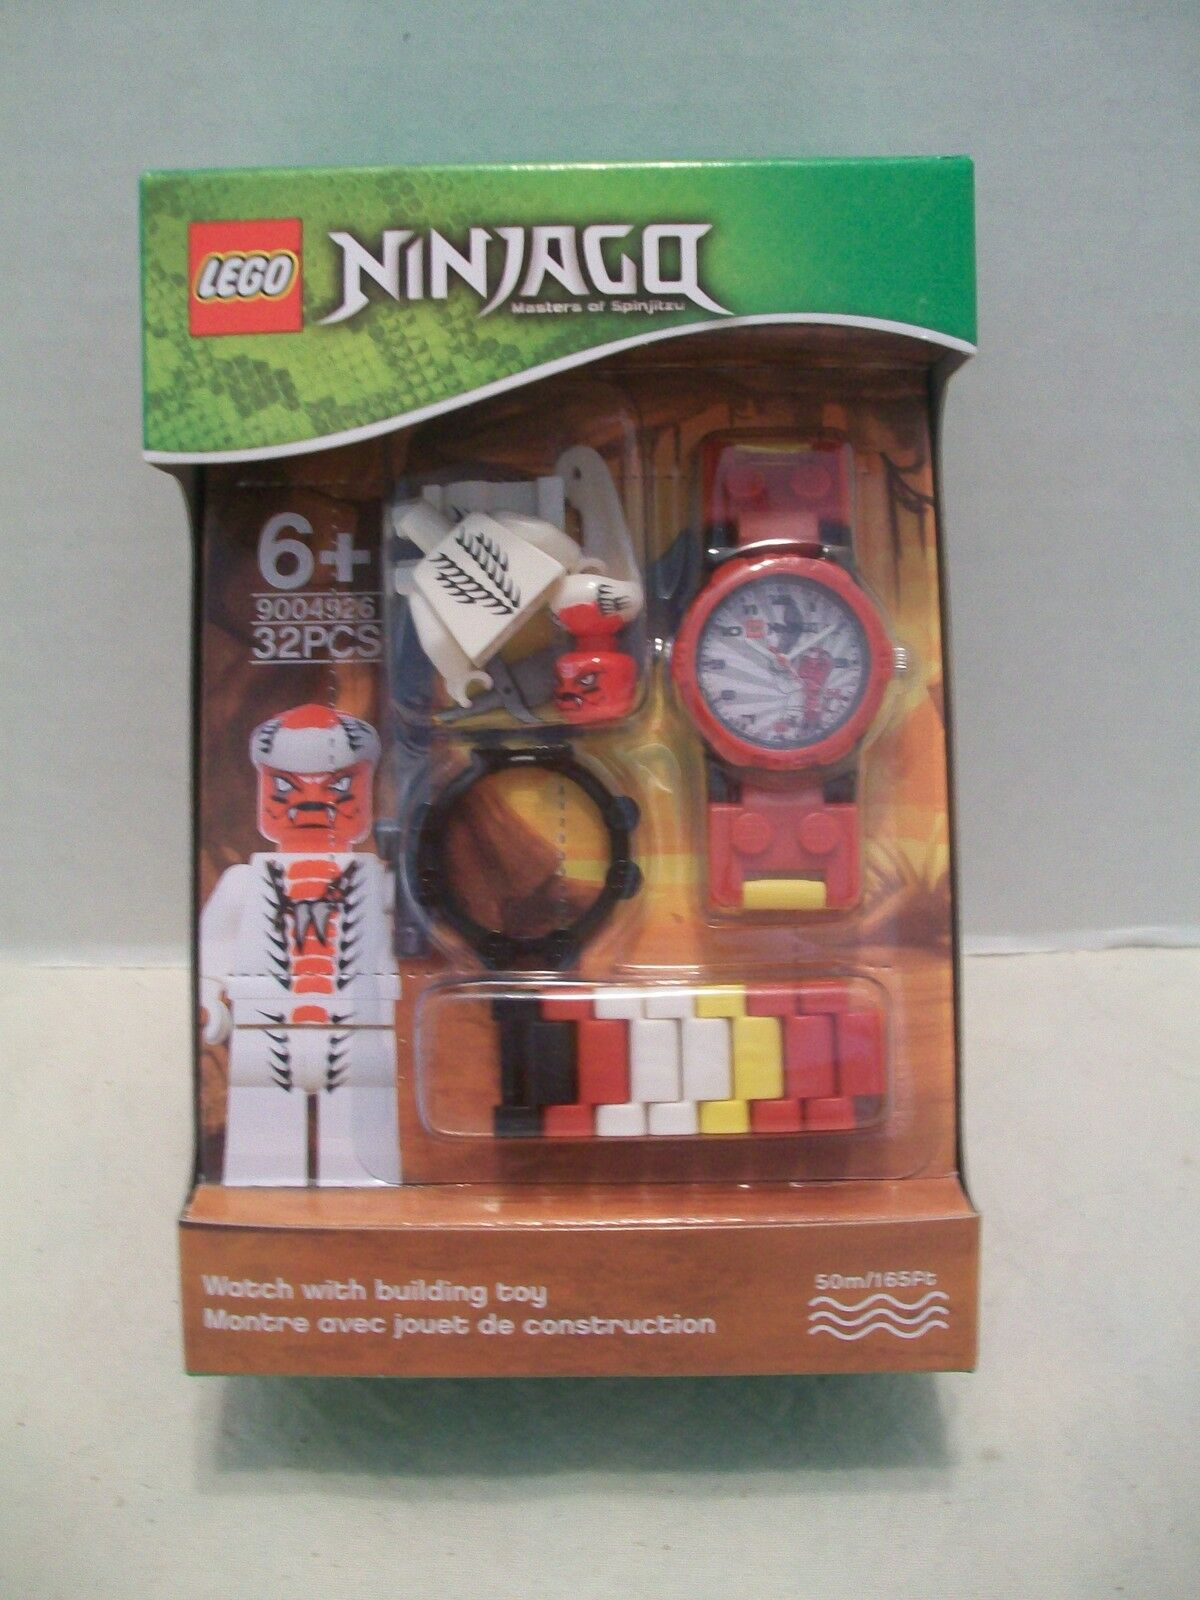 Lego  9004926 Ninjago Snappa Watch With Building Toy Rare & HTF NIB 2011